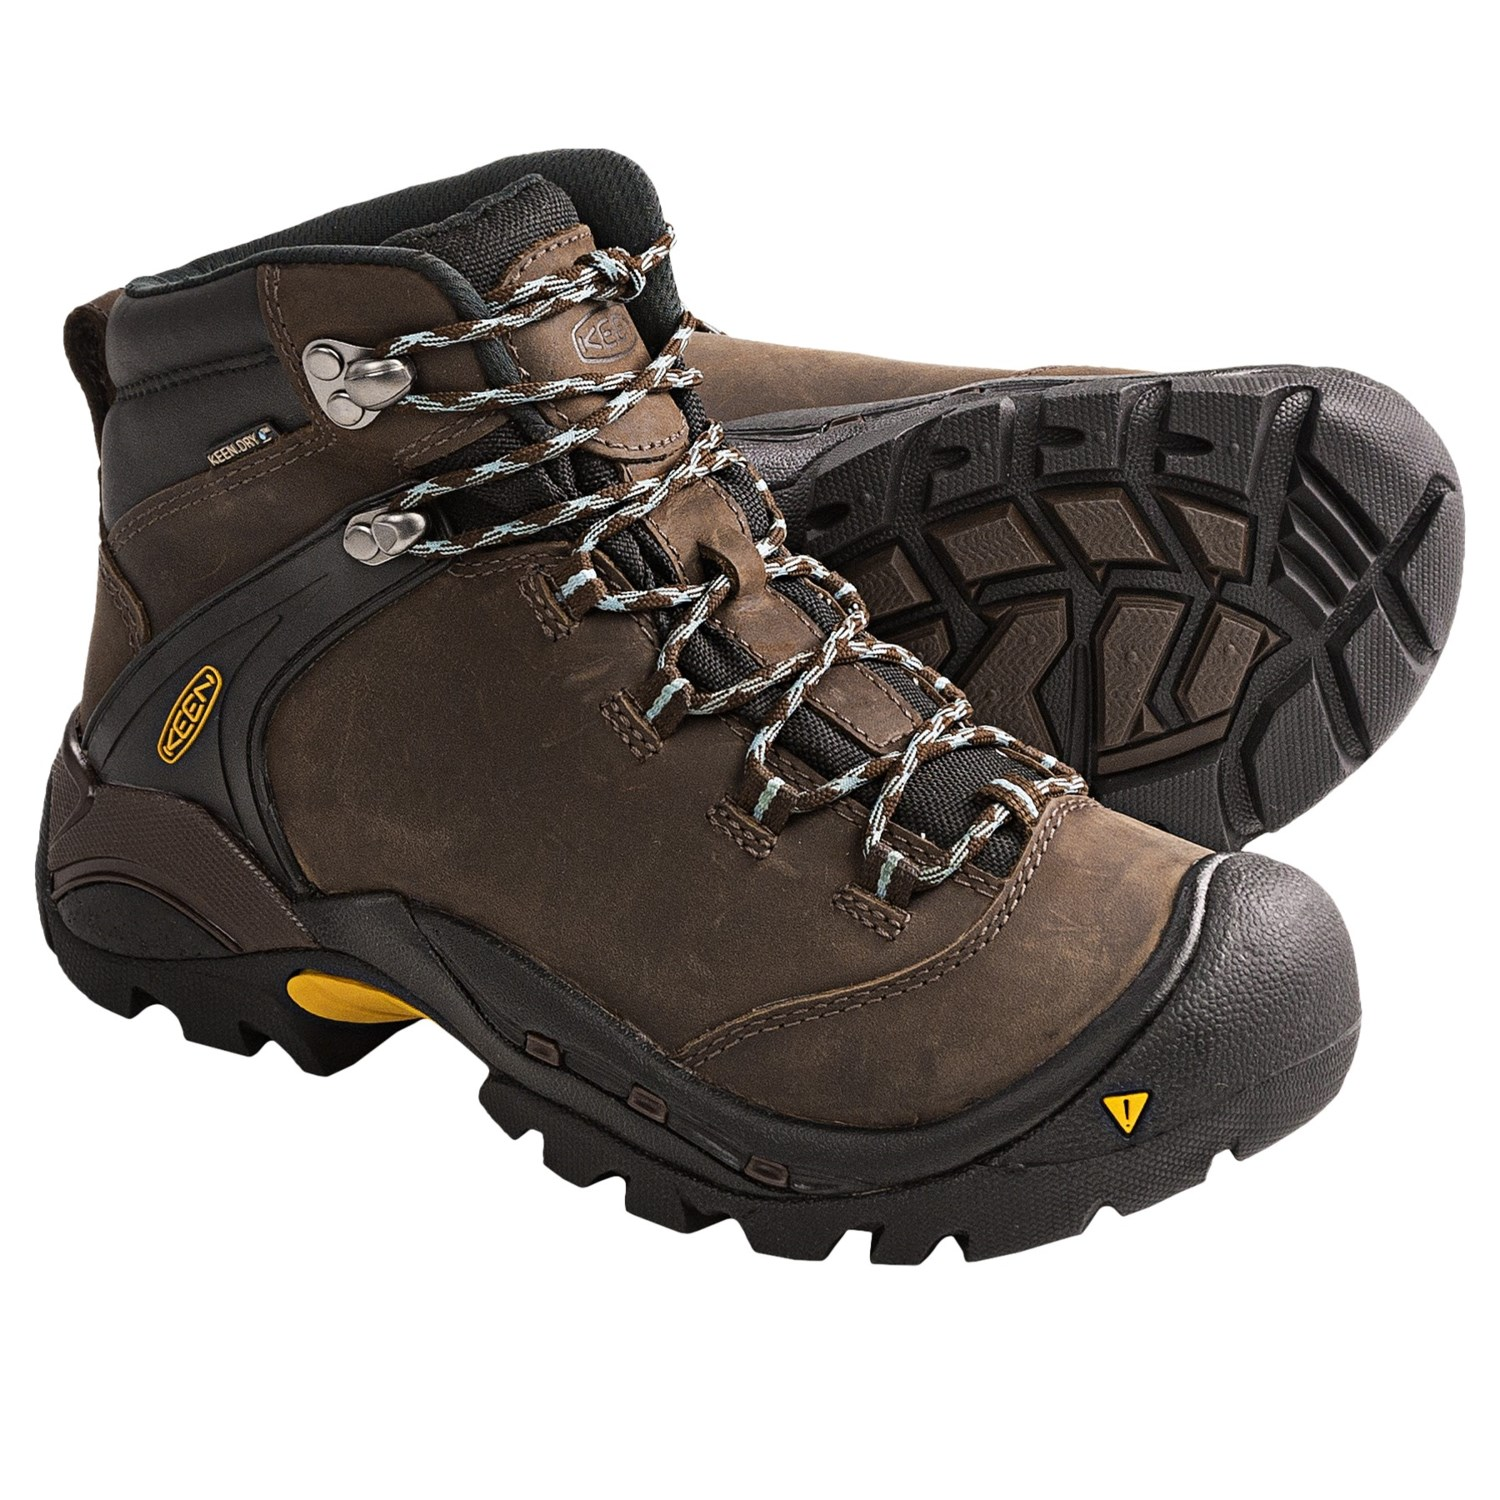 Keen Ketchum Leather Hiking Boots (For Women) 6741N